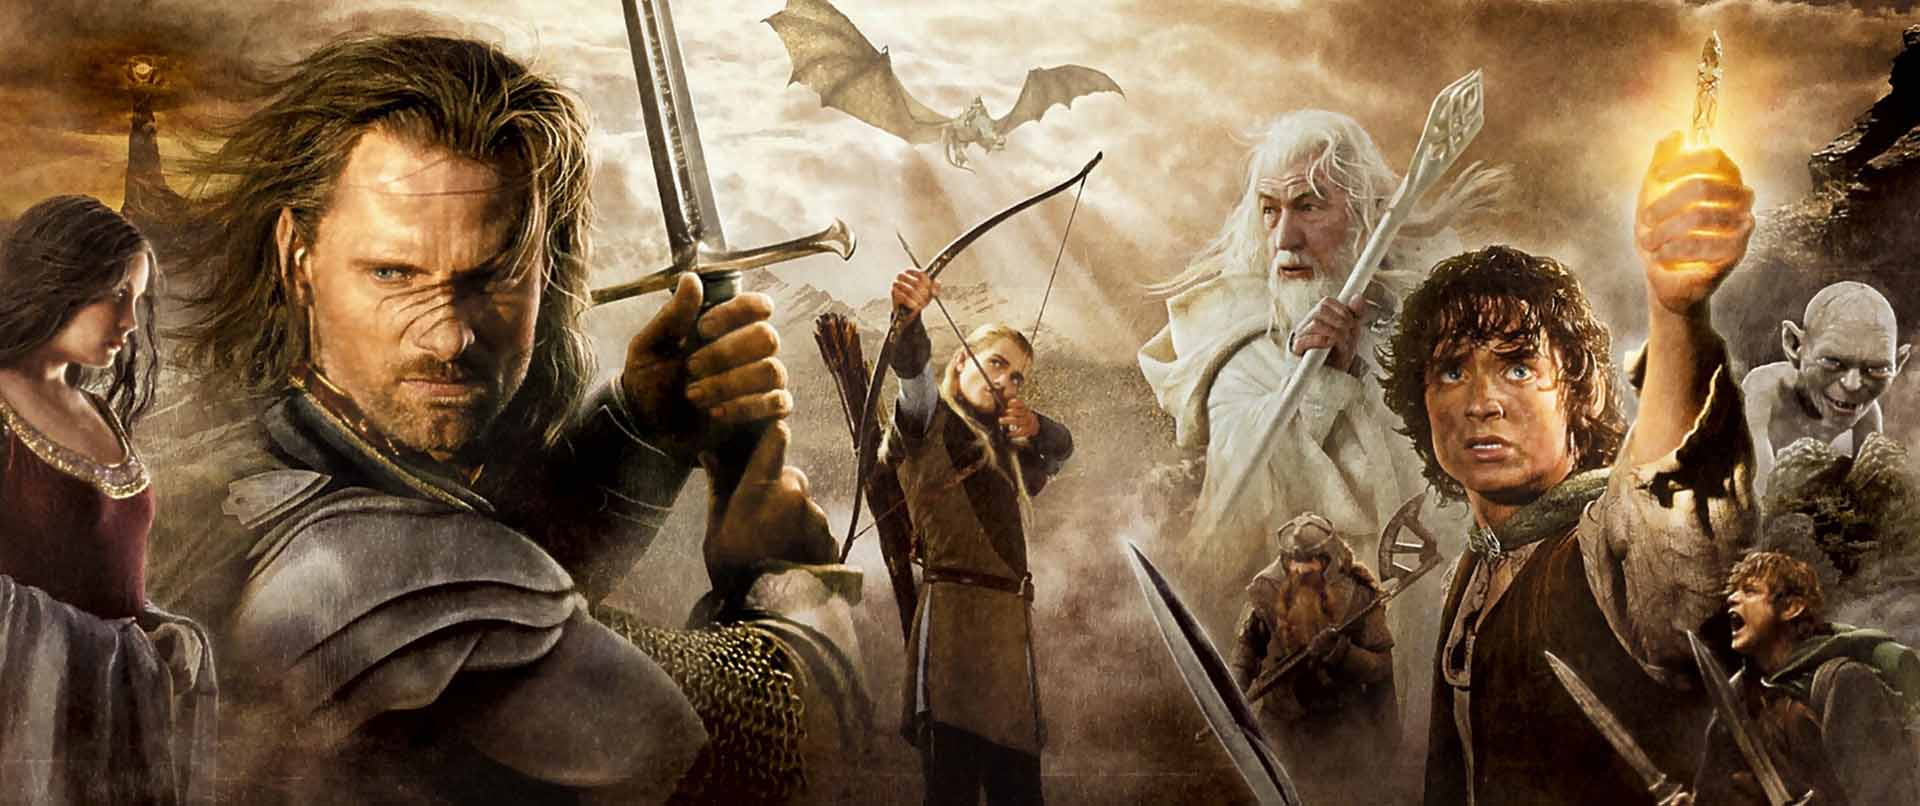 Serie de Tv de The Lord of the Rings en la mira de Amazon